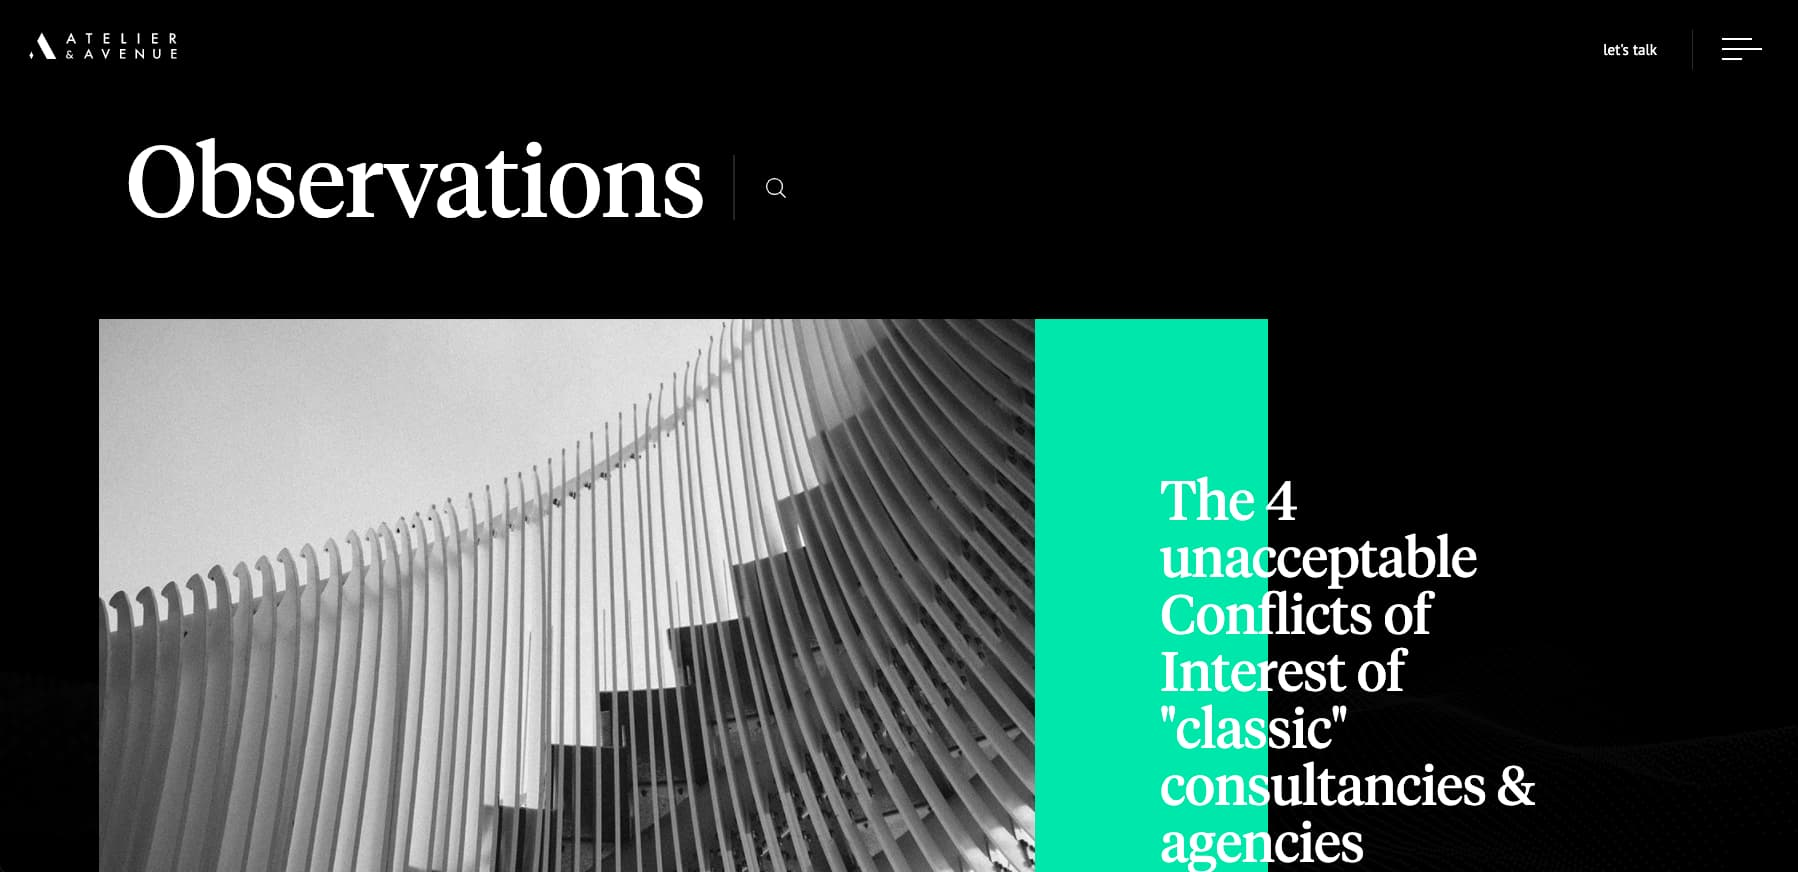 Atelier and Avenues blog is unconventional but still exhibits great blog layout design principles including grid layout and clean fonts.